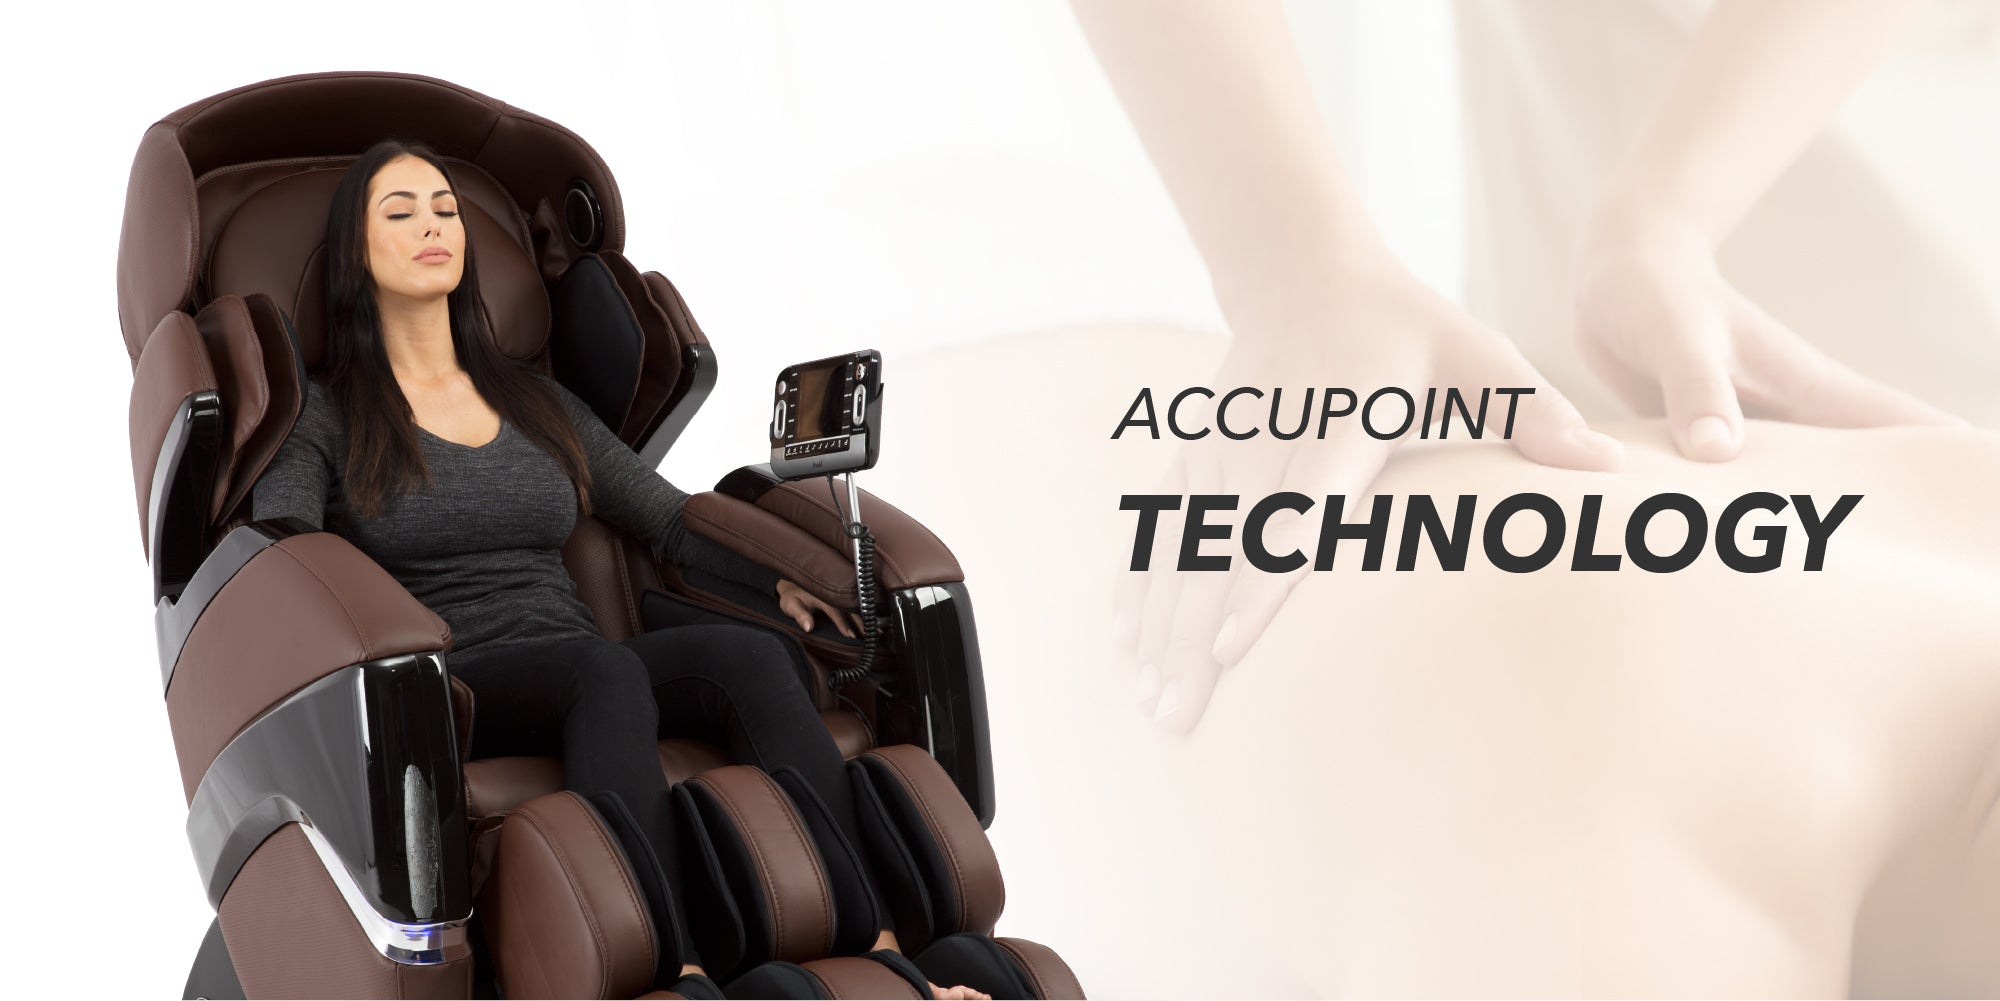 Accupoint Technology